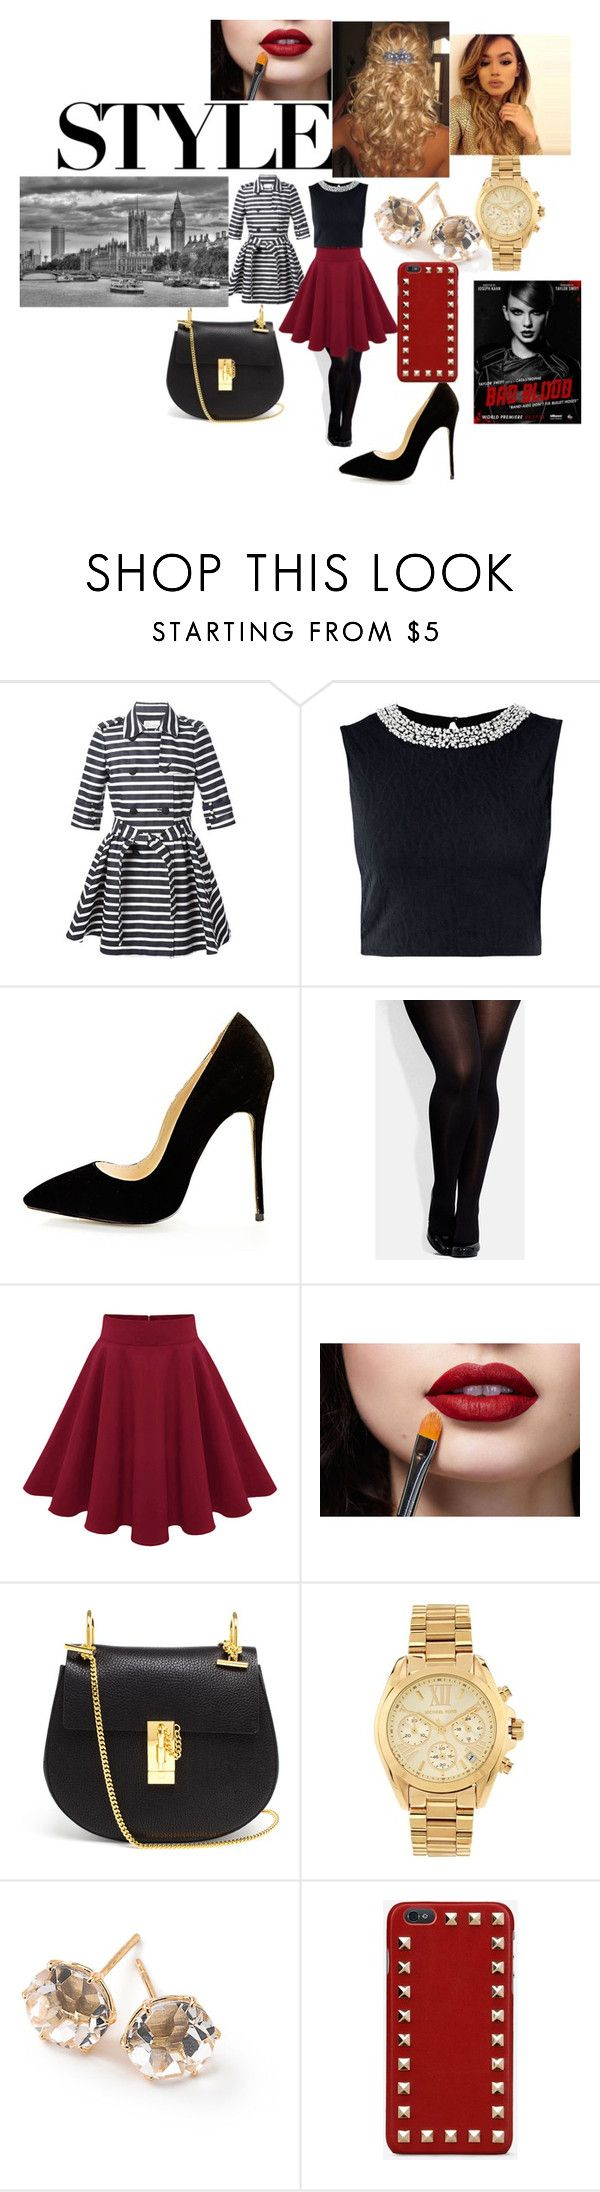 Style by olgasanchez09 on Polyvore featuring moda, RED Valentino, City Chic, Chloé, Michael Kors, Ippolita and Valentino